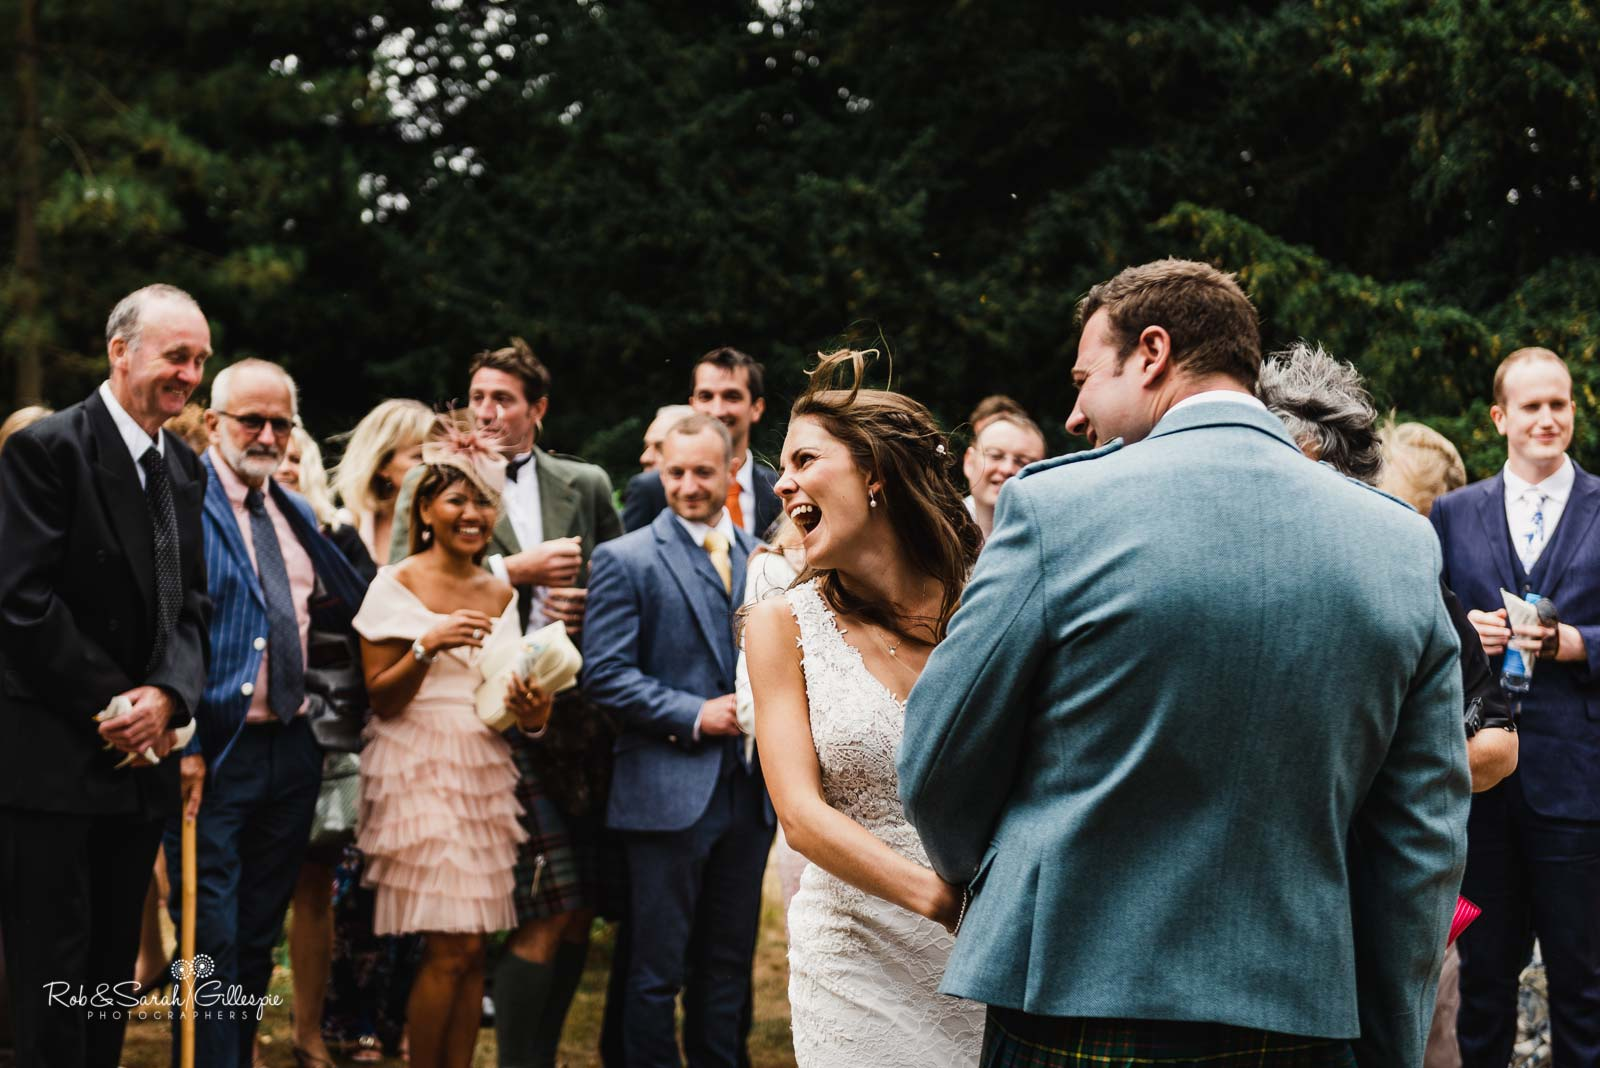 Bride and groom congratulated by wedding guests at St Giles church Packwood